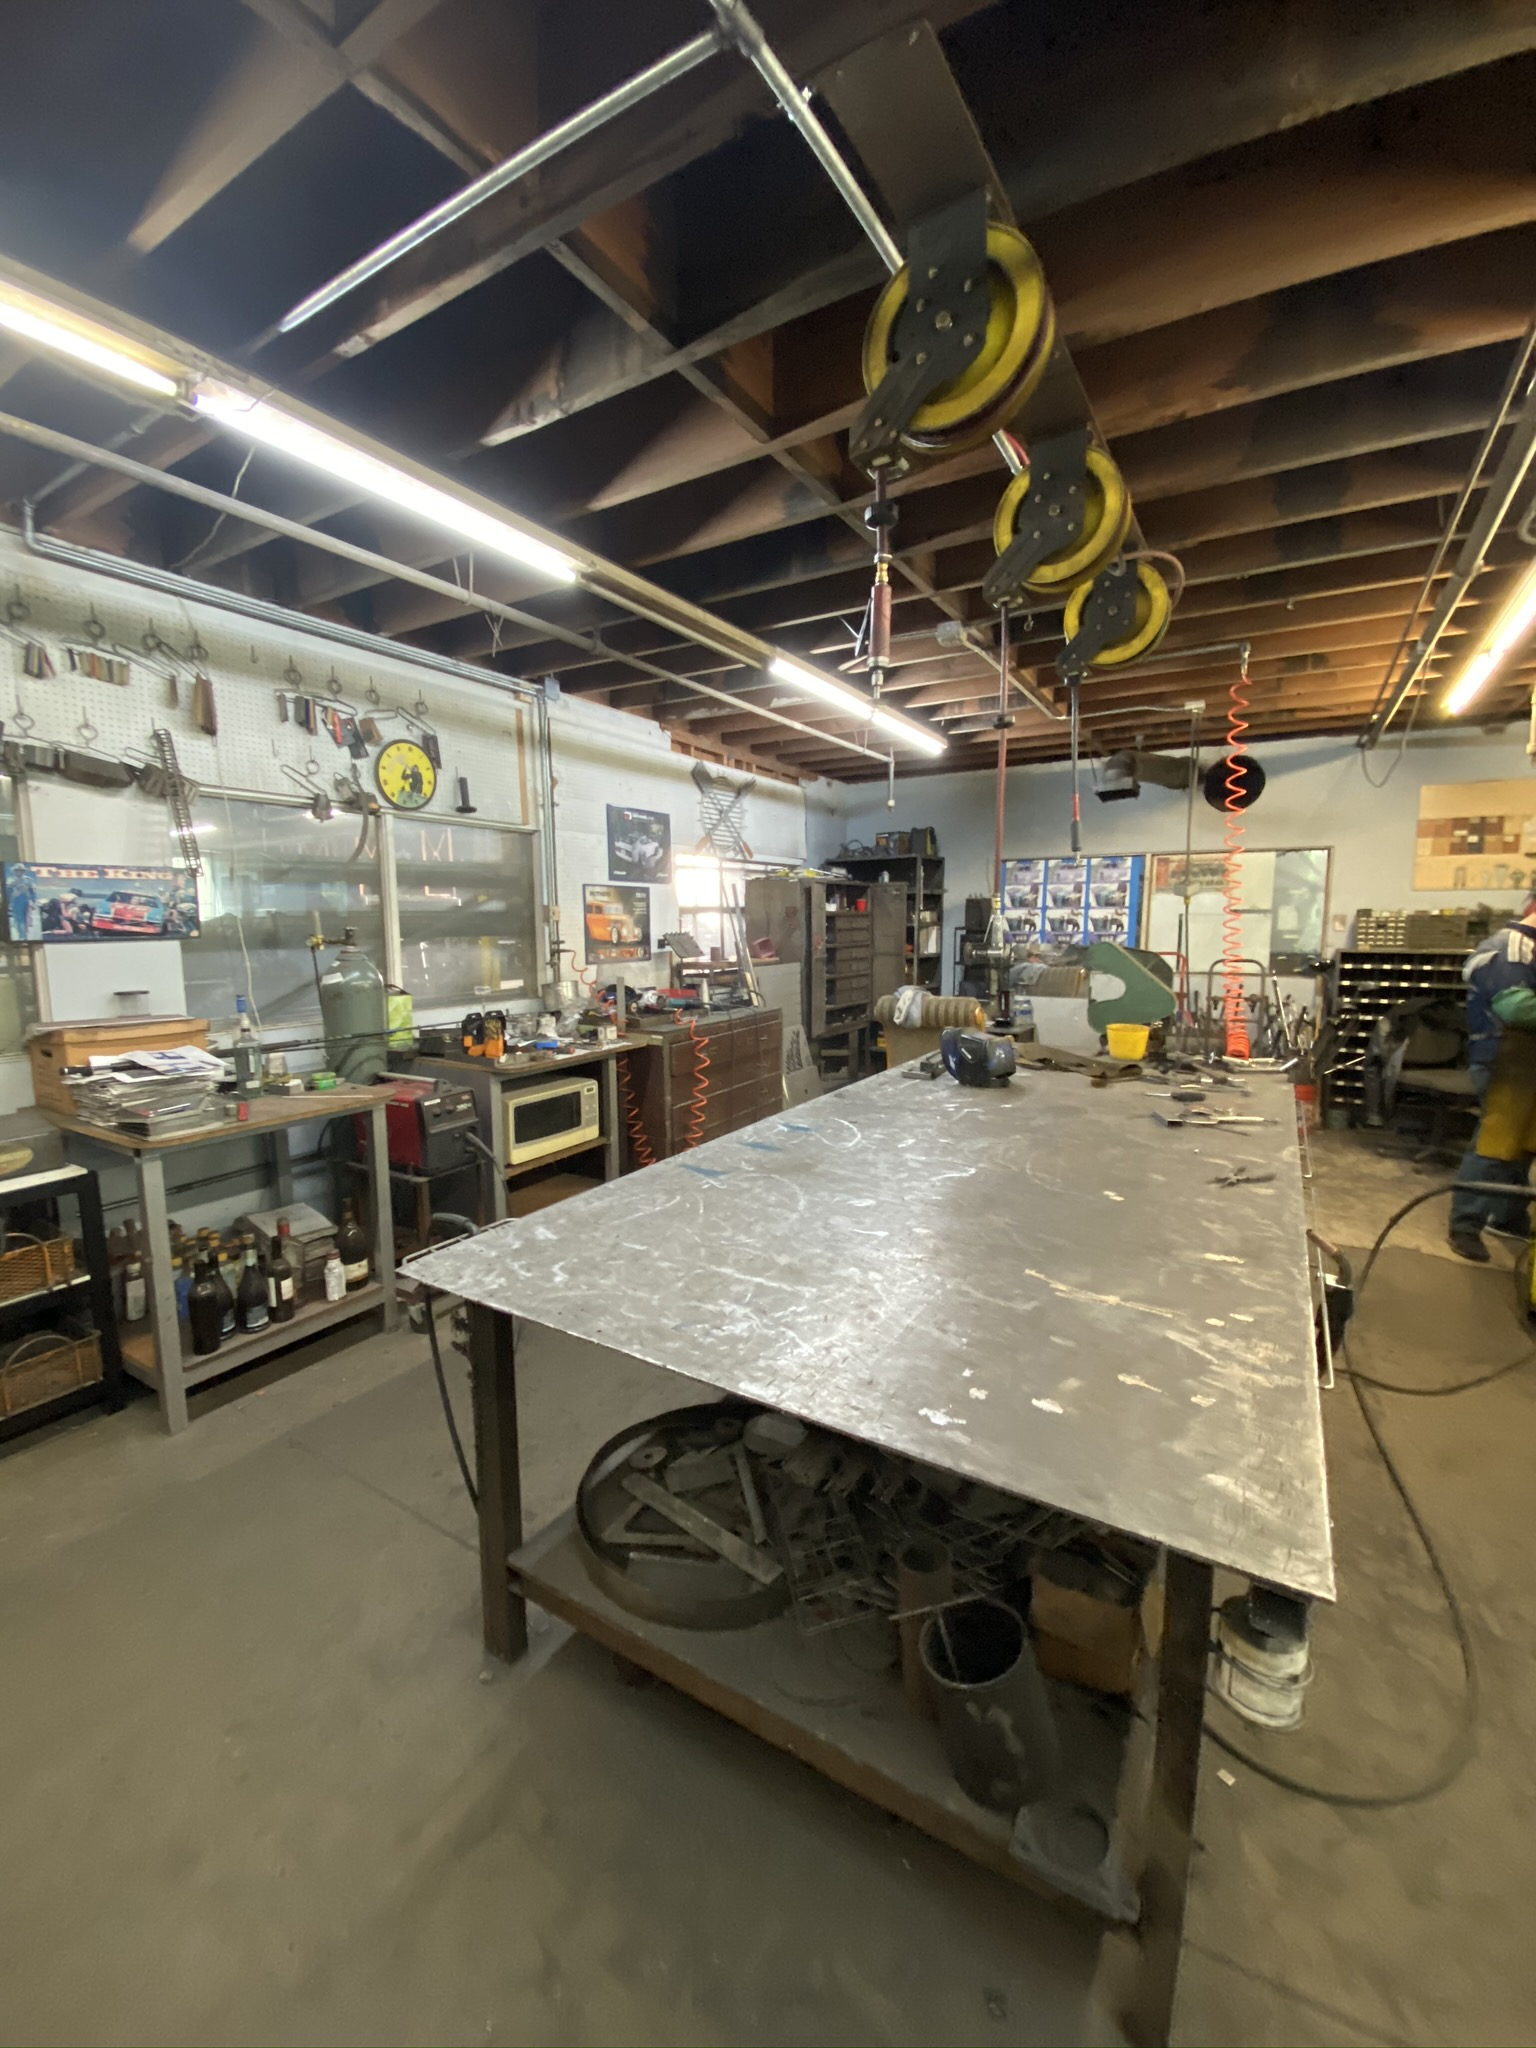 METAL STORE FIXTURE & SHEET METAL FABRICATION FACILITY, - Image 54 of 71